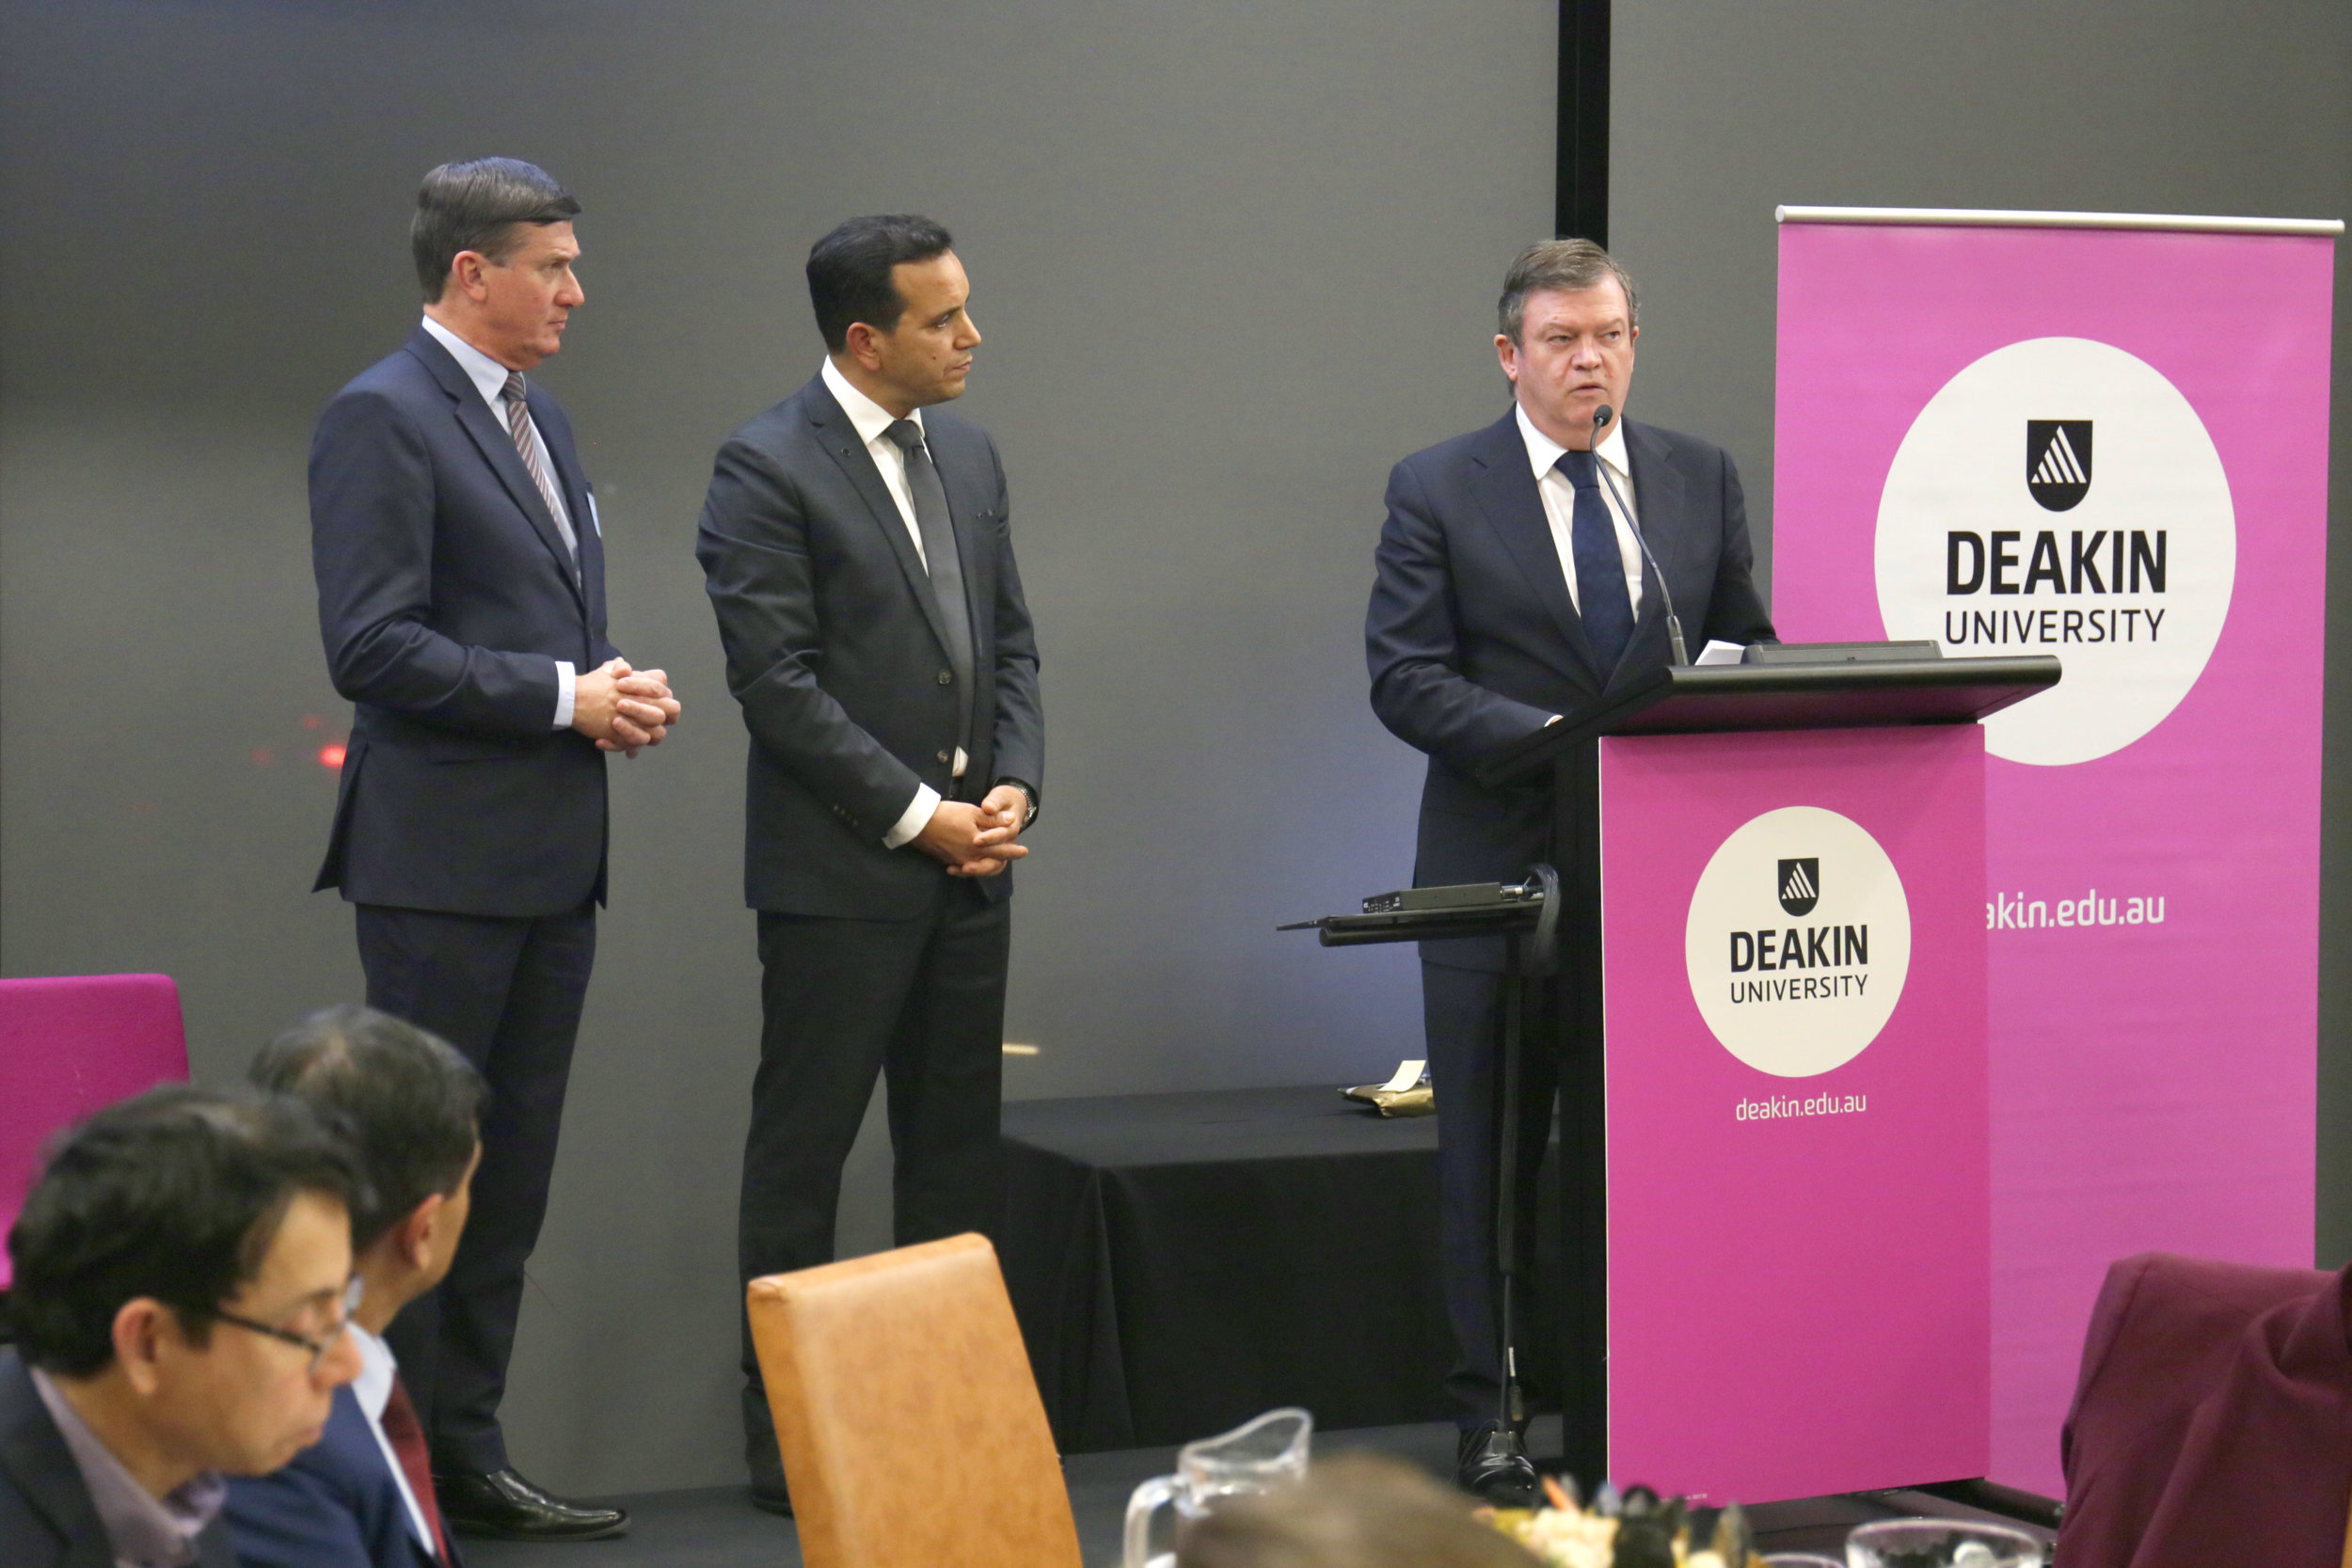 Mr Neil Angus MP, Professor Fethi Mansouri, Mr Frank McGuire MP